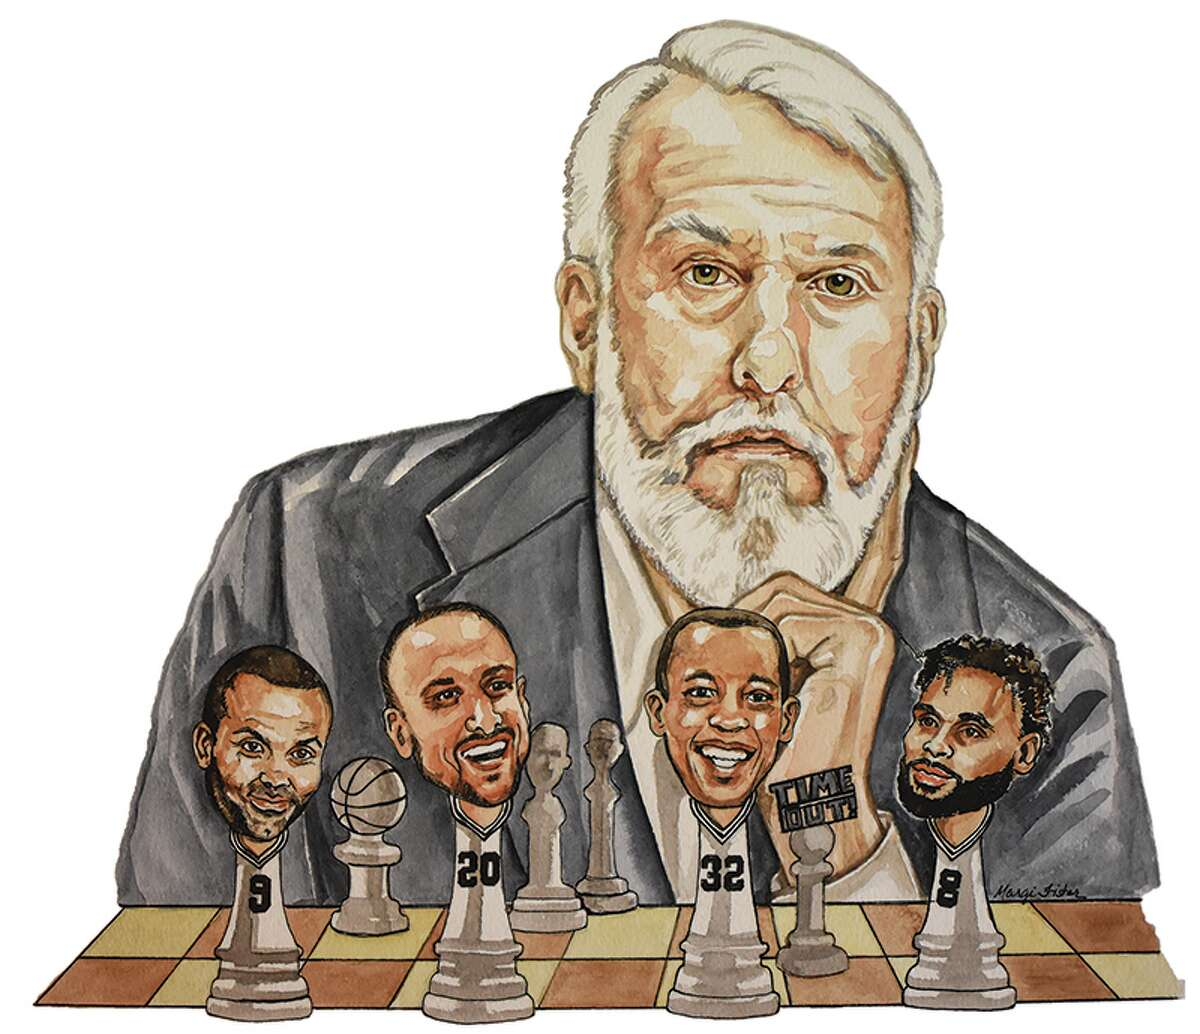 Artwork done by Margie Fisher of Spurs head coach Gregg Popovich and some of his players.